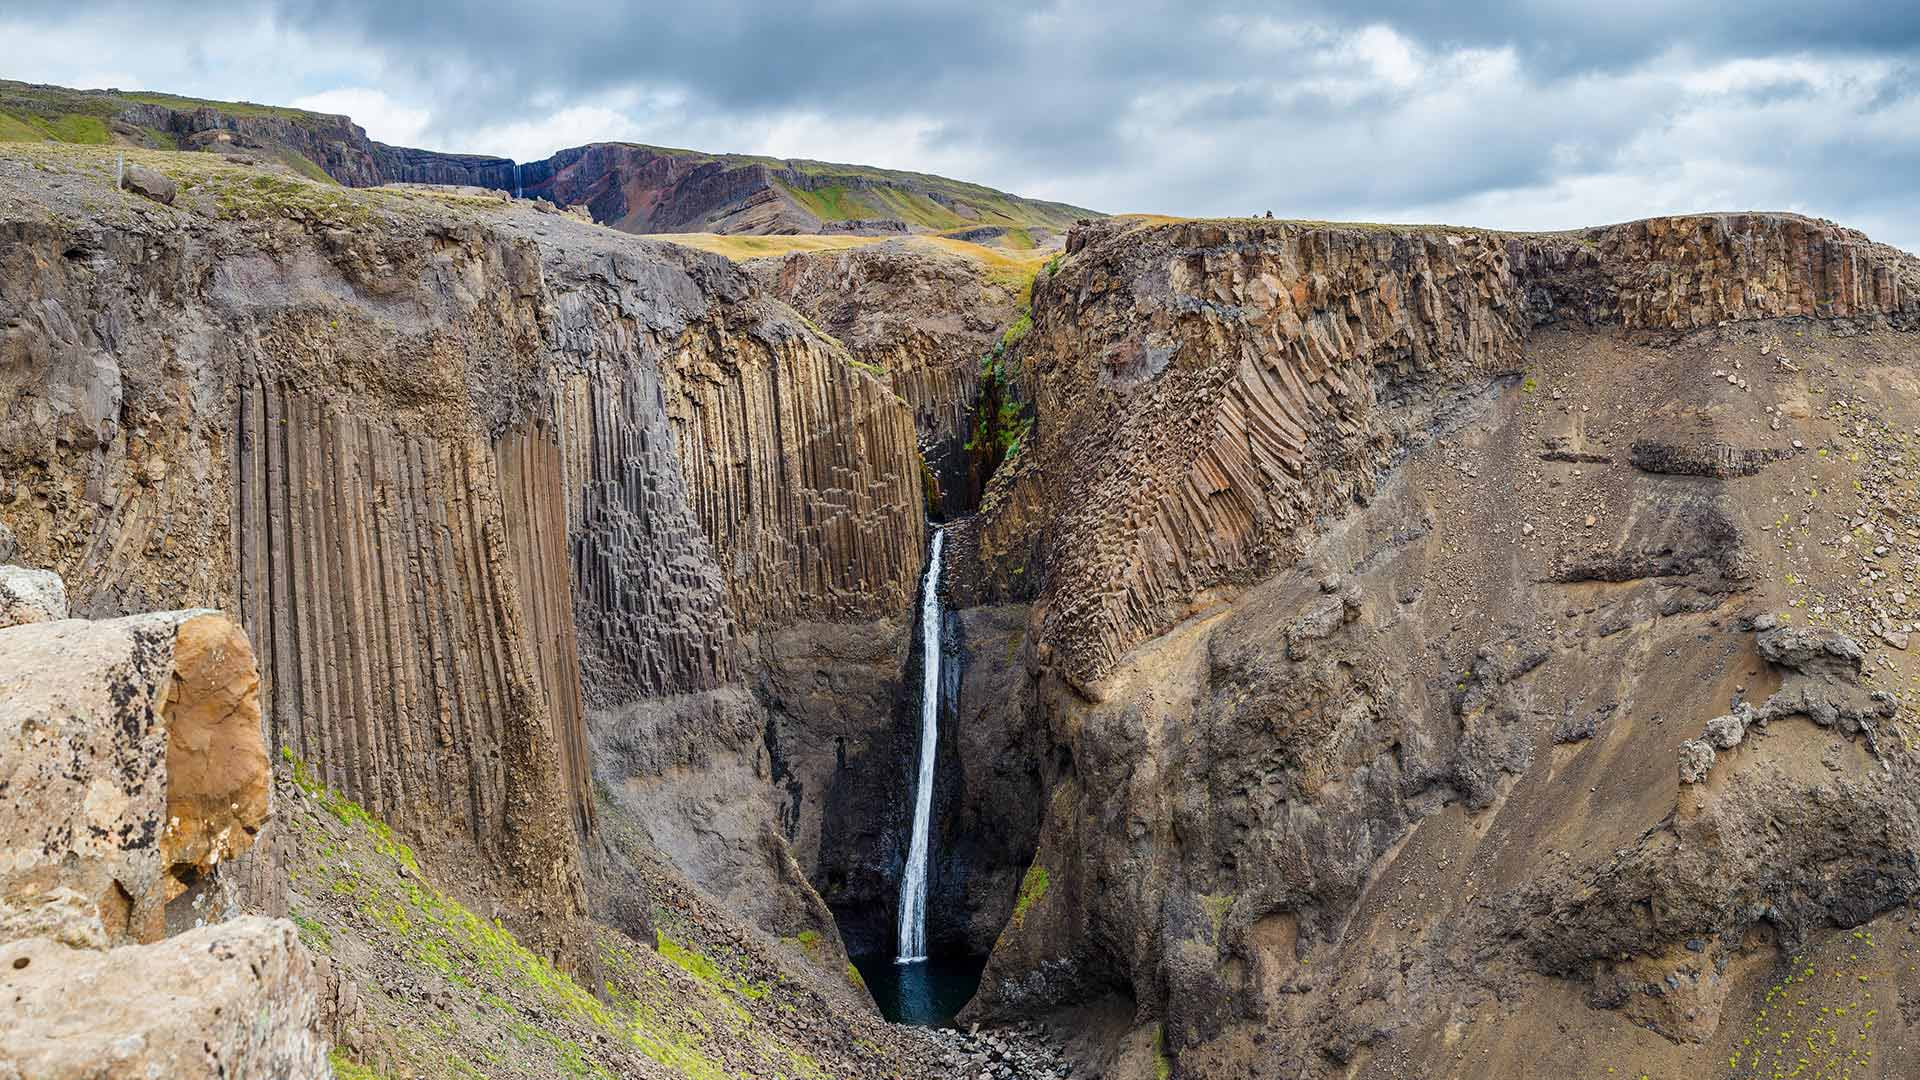 Hengifoss waterfall in East Iceland